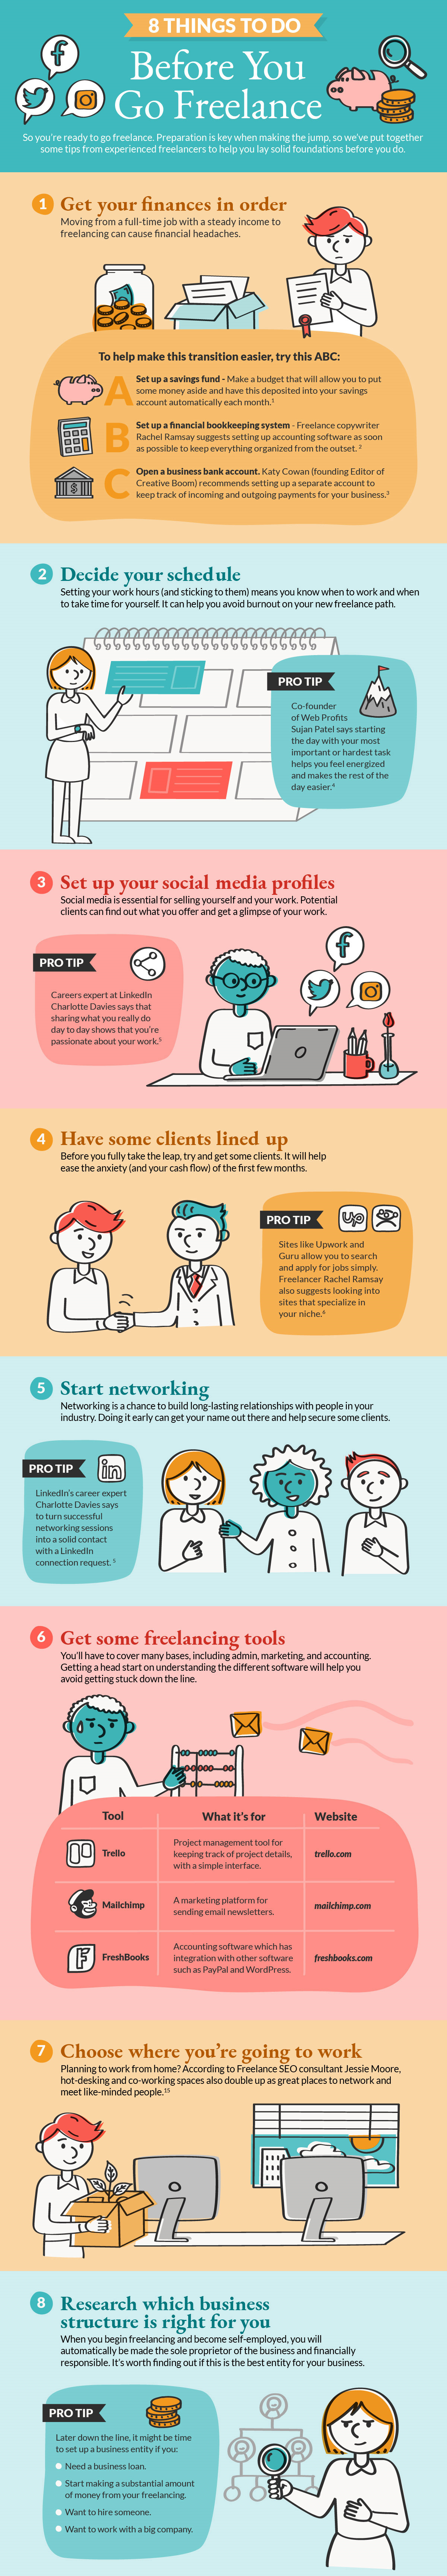 Infographic: things to do before you go freelance